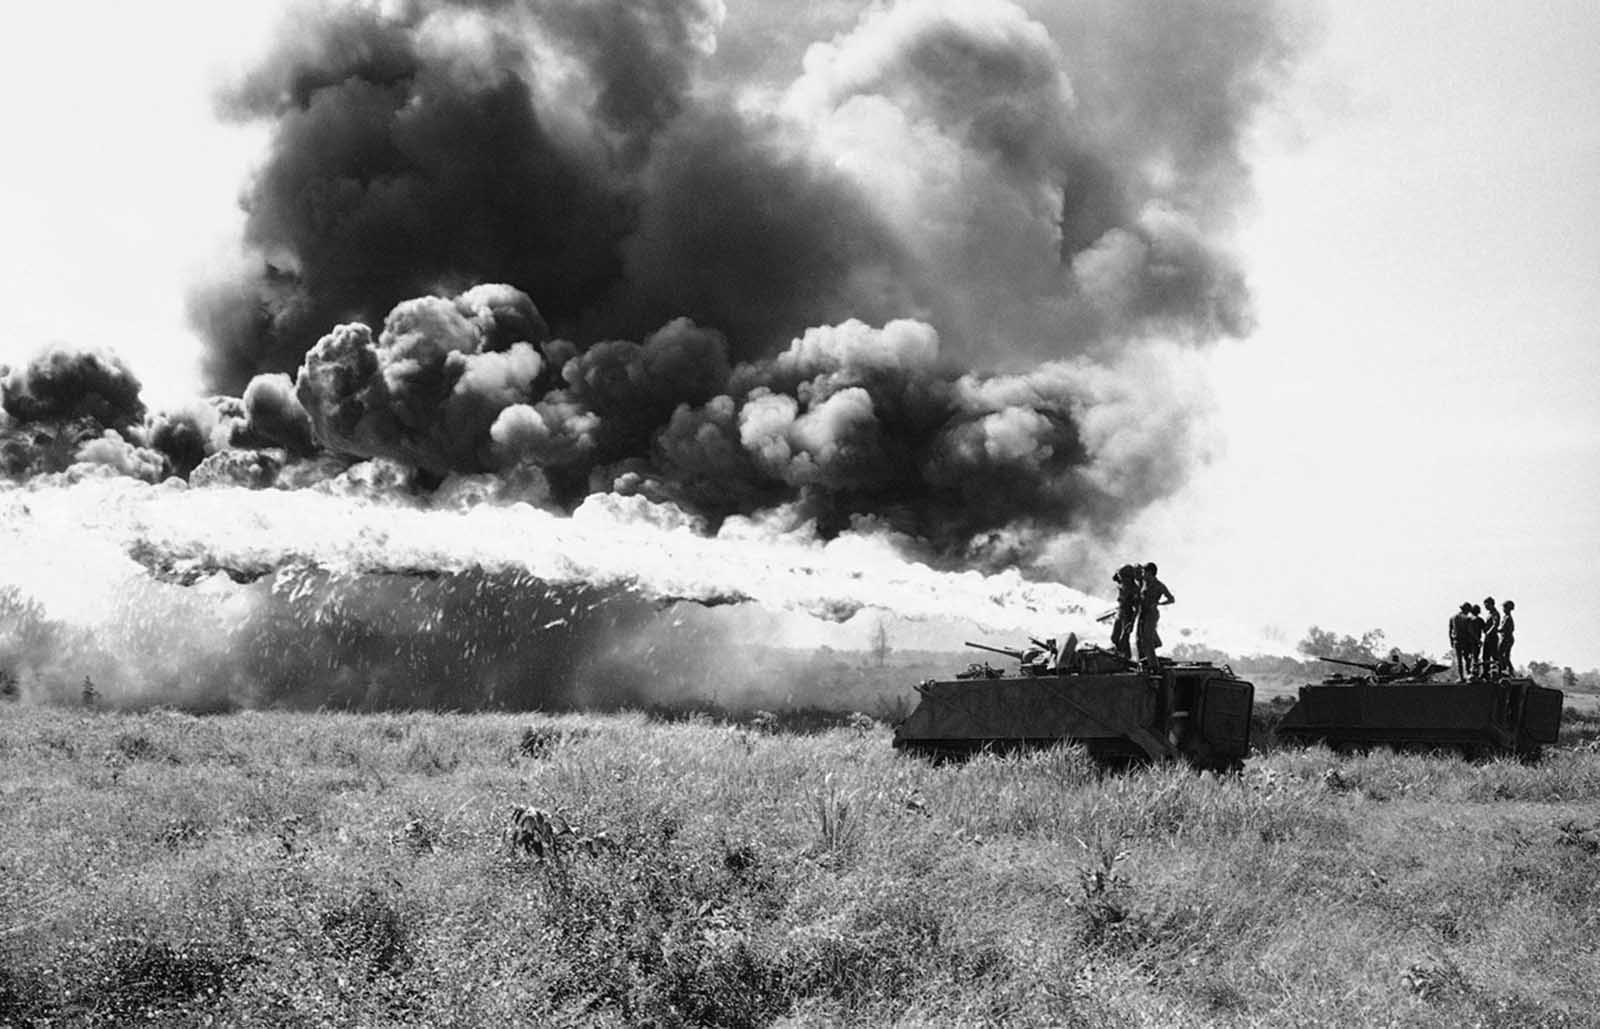 South Vietnamese troopers test fire flame throwers mounted atop APCs prior to moving out on operation west of Krek, Cambodia, on November 28, 1971.